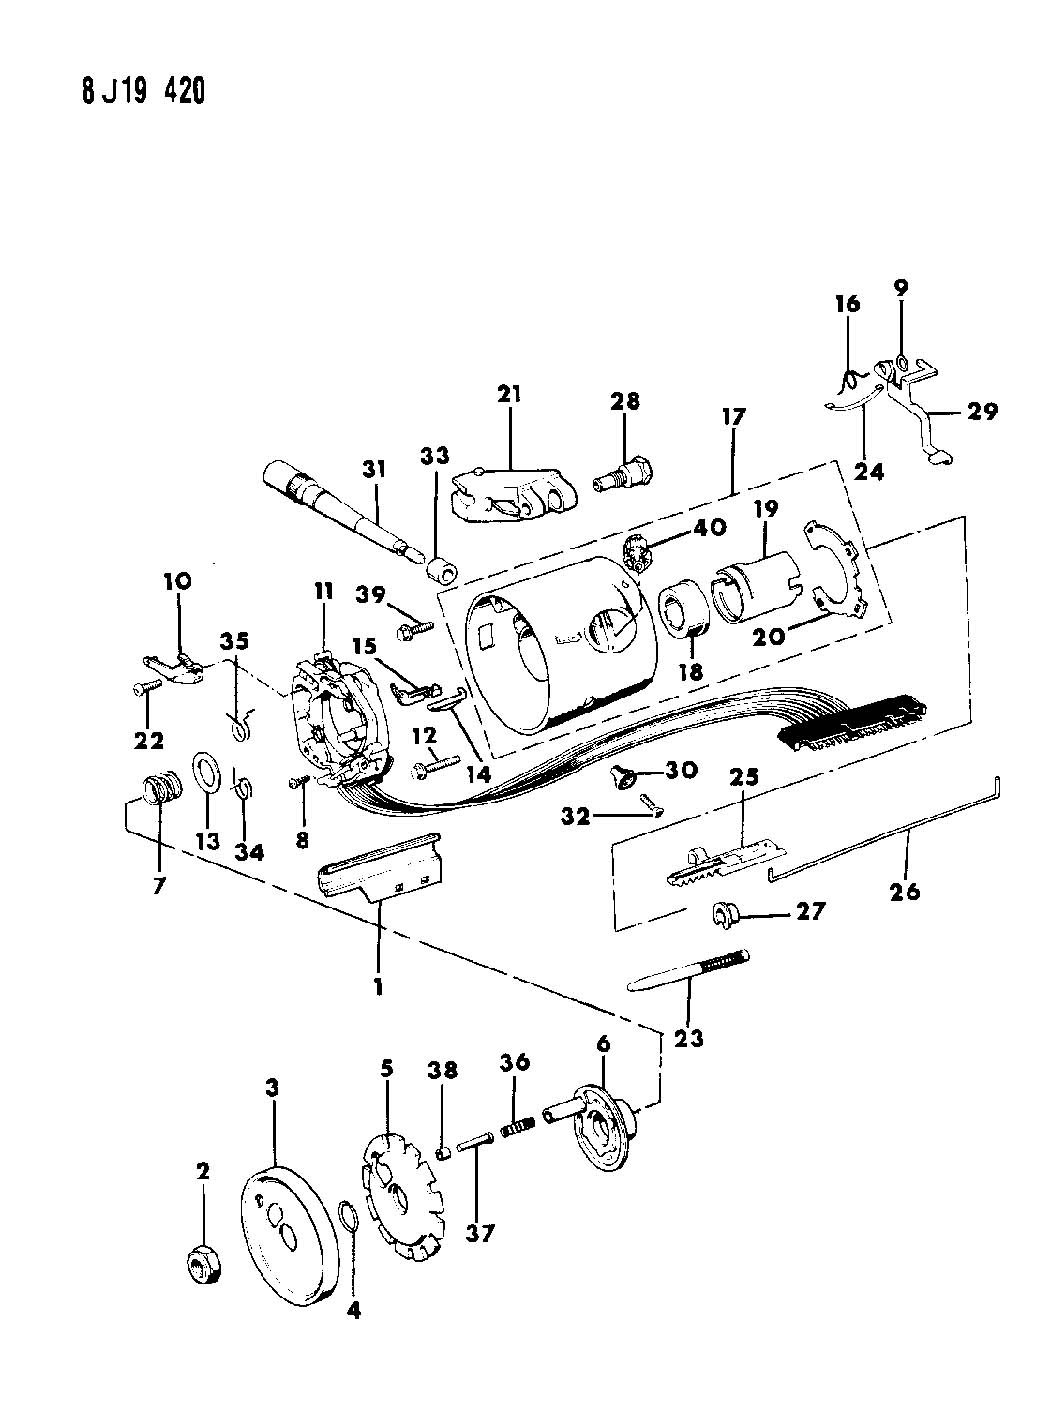 1988 Jeep Cherokee Steering Diagram Great Installation Of Wiring For Comanche Yj Third Level Rh 5 9 15 Jacobwinterstein Com Components Column